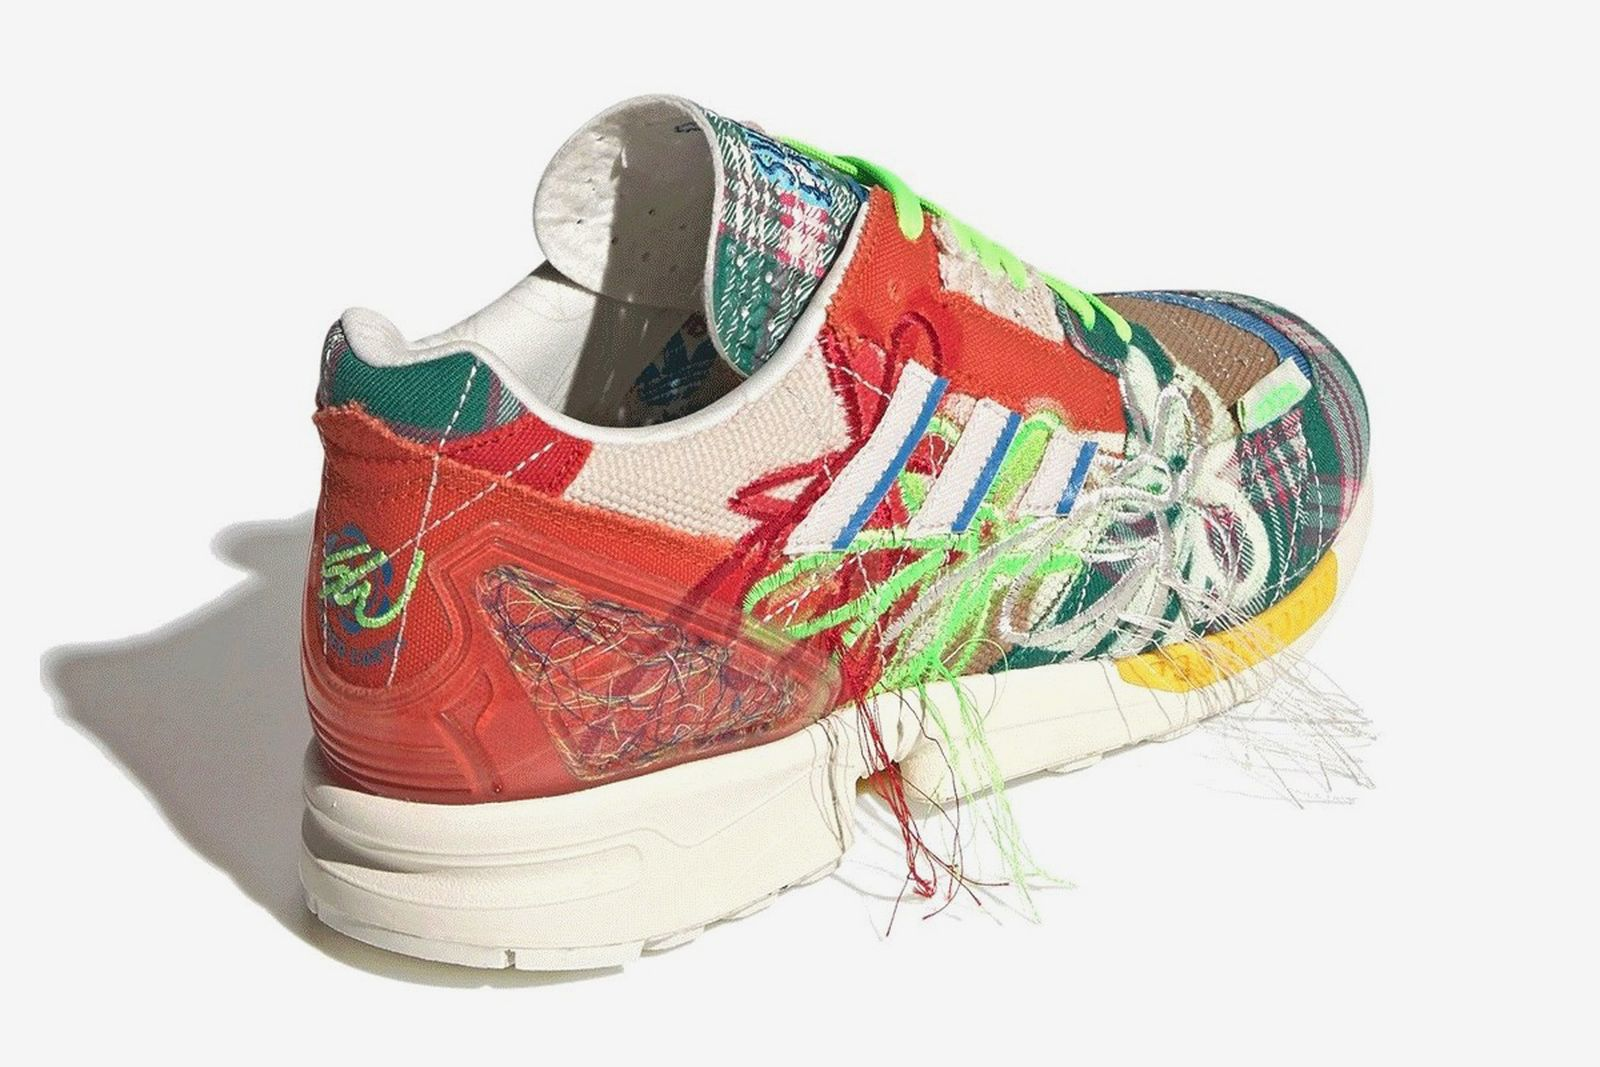 sean-wotherspoon-adidas-zx-8000-release-date-price-05